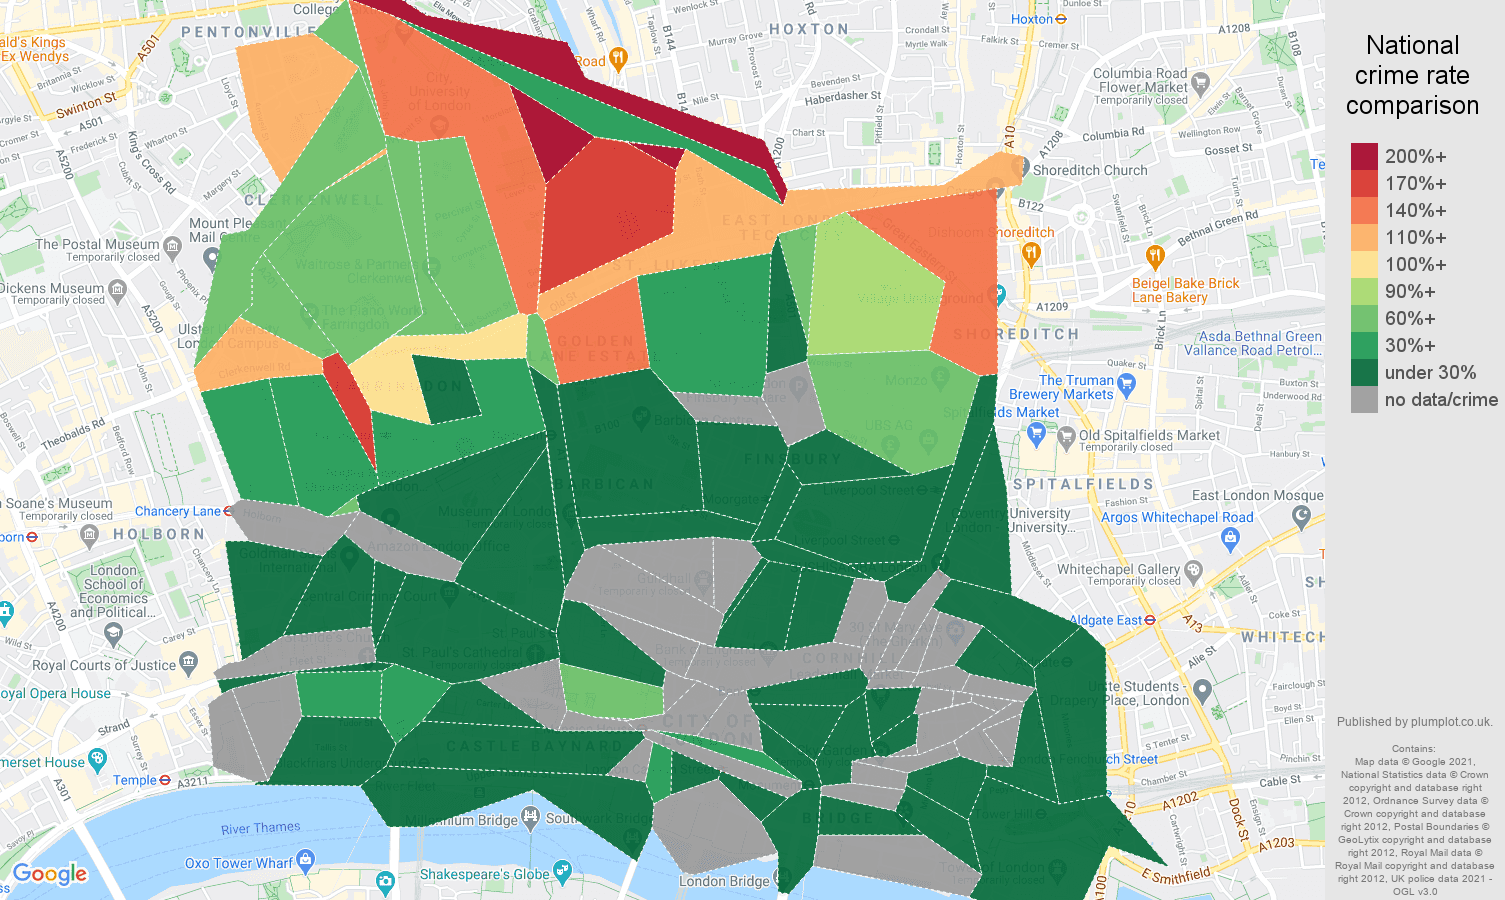 East Central London burglary crime rate comparison map